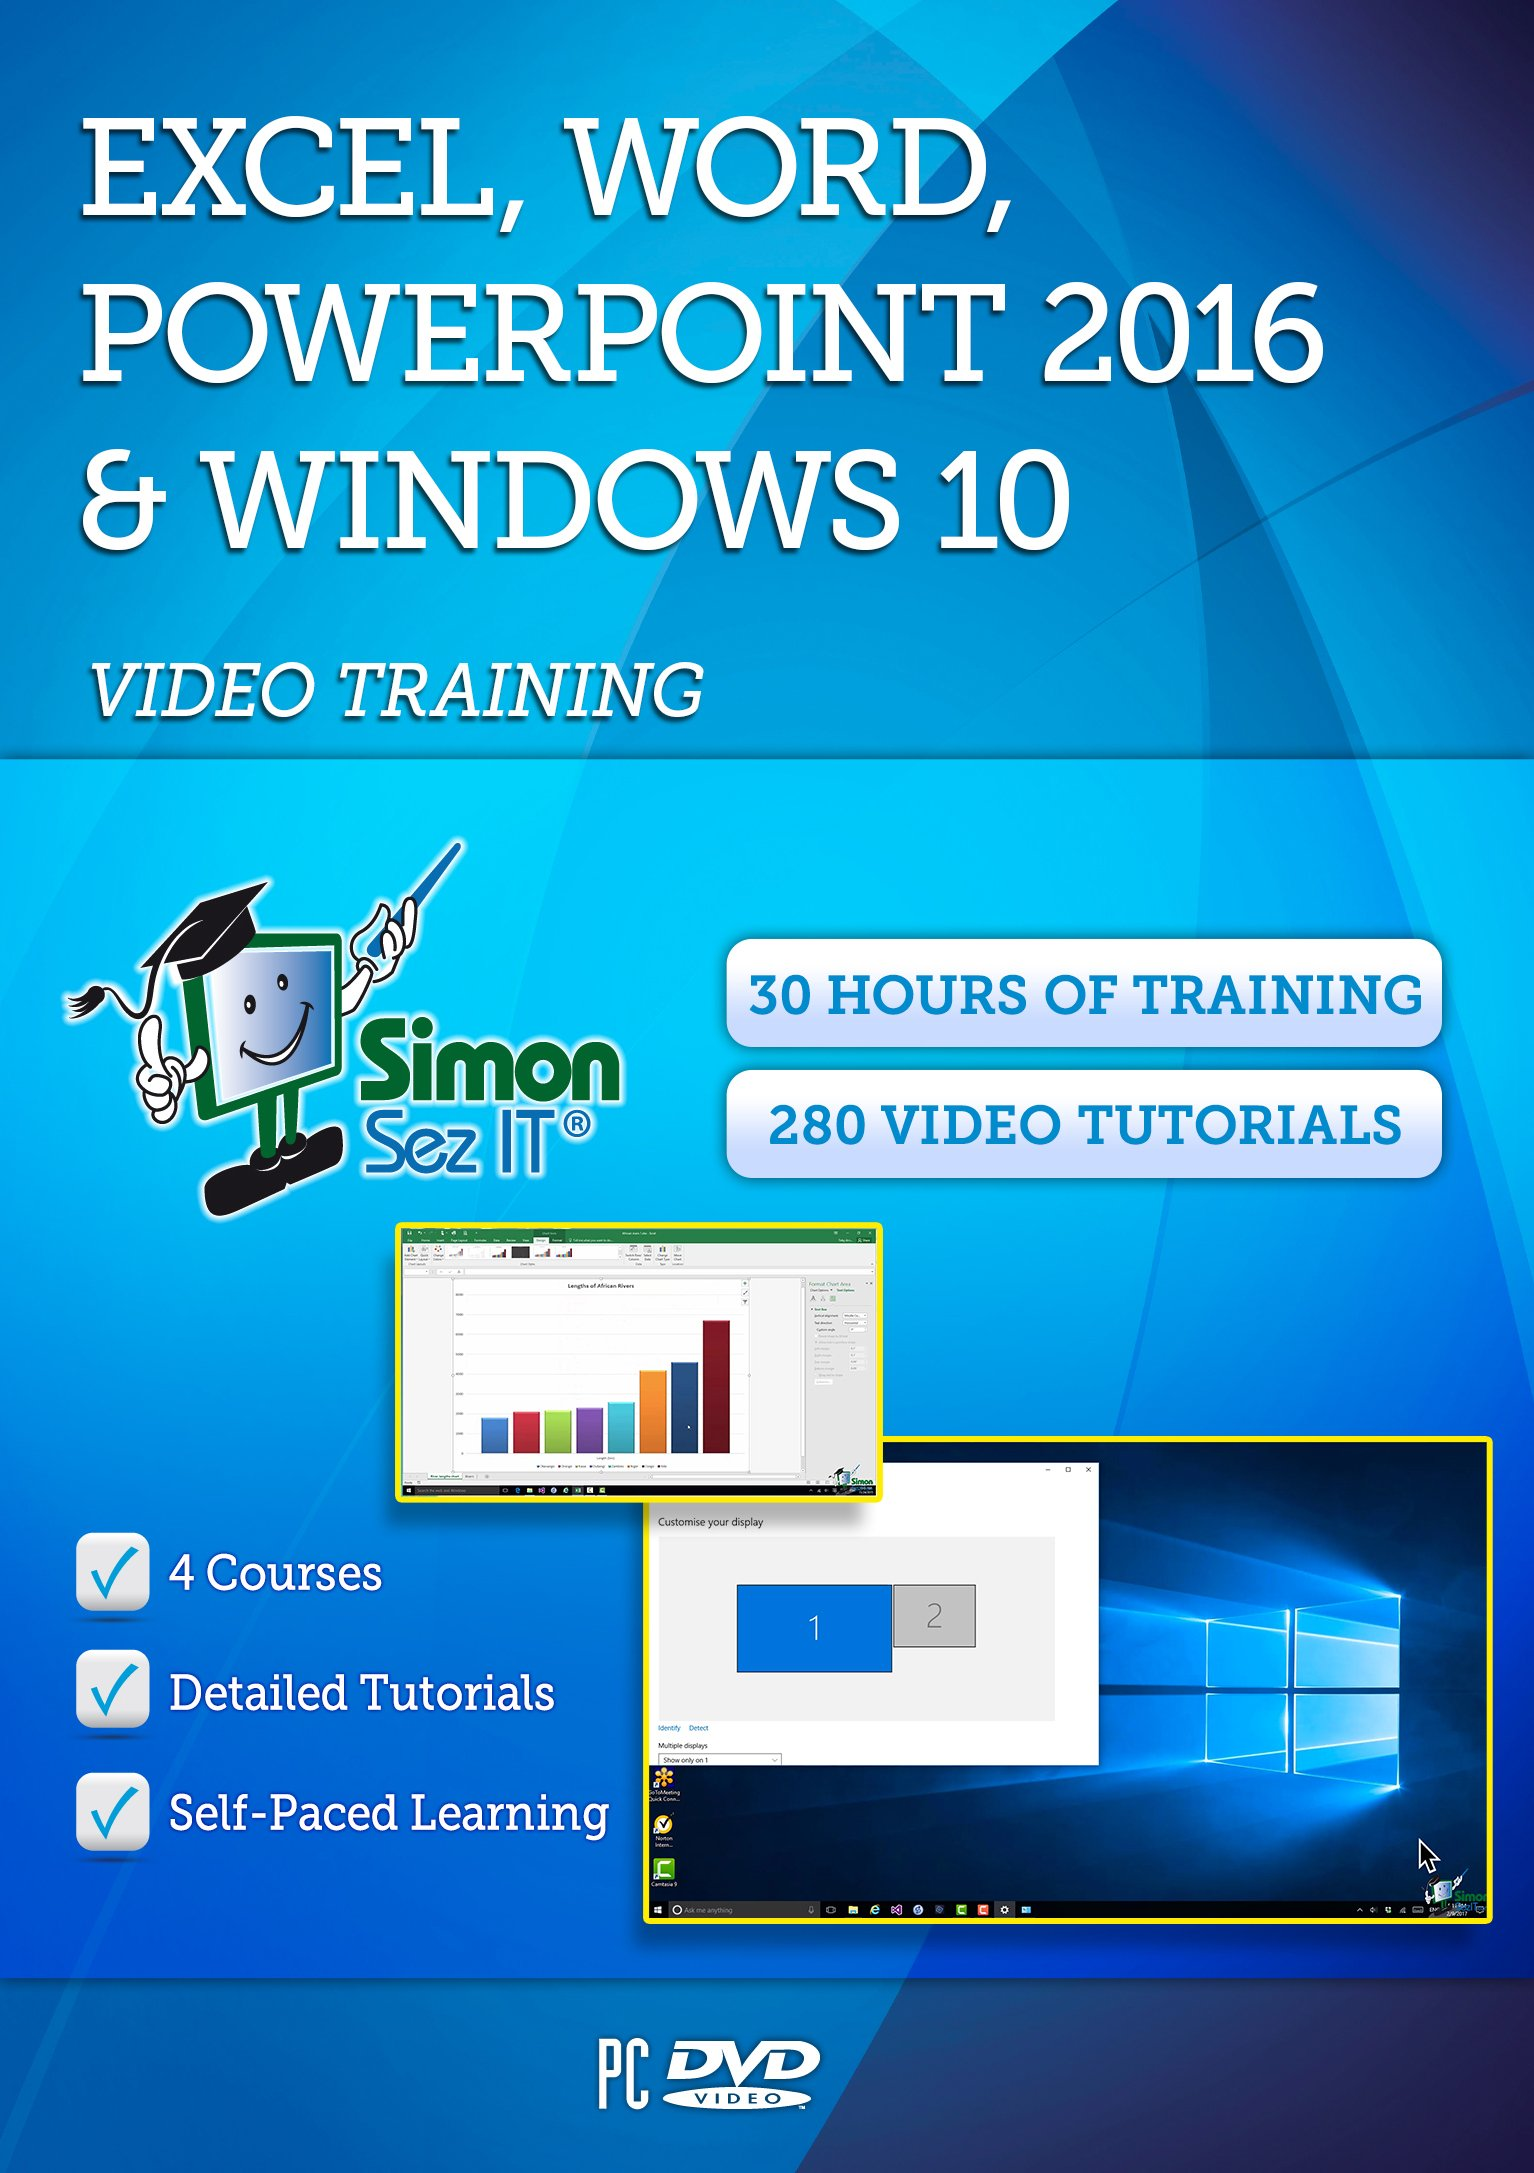 Microsoft Excel, Word, Powerpoint 2016 and Windows 10 - 30 Hours of Video Training Tutorials by Simon Sez IT